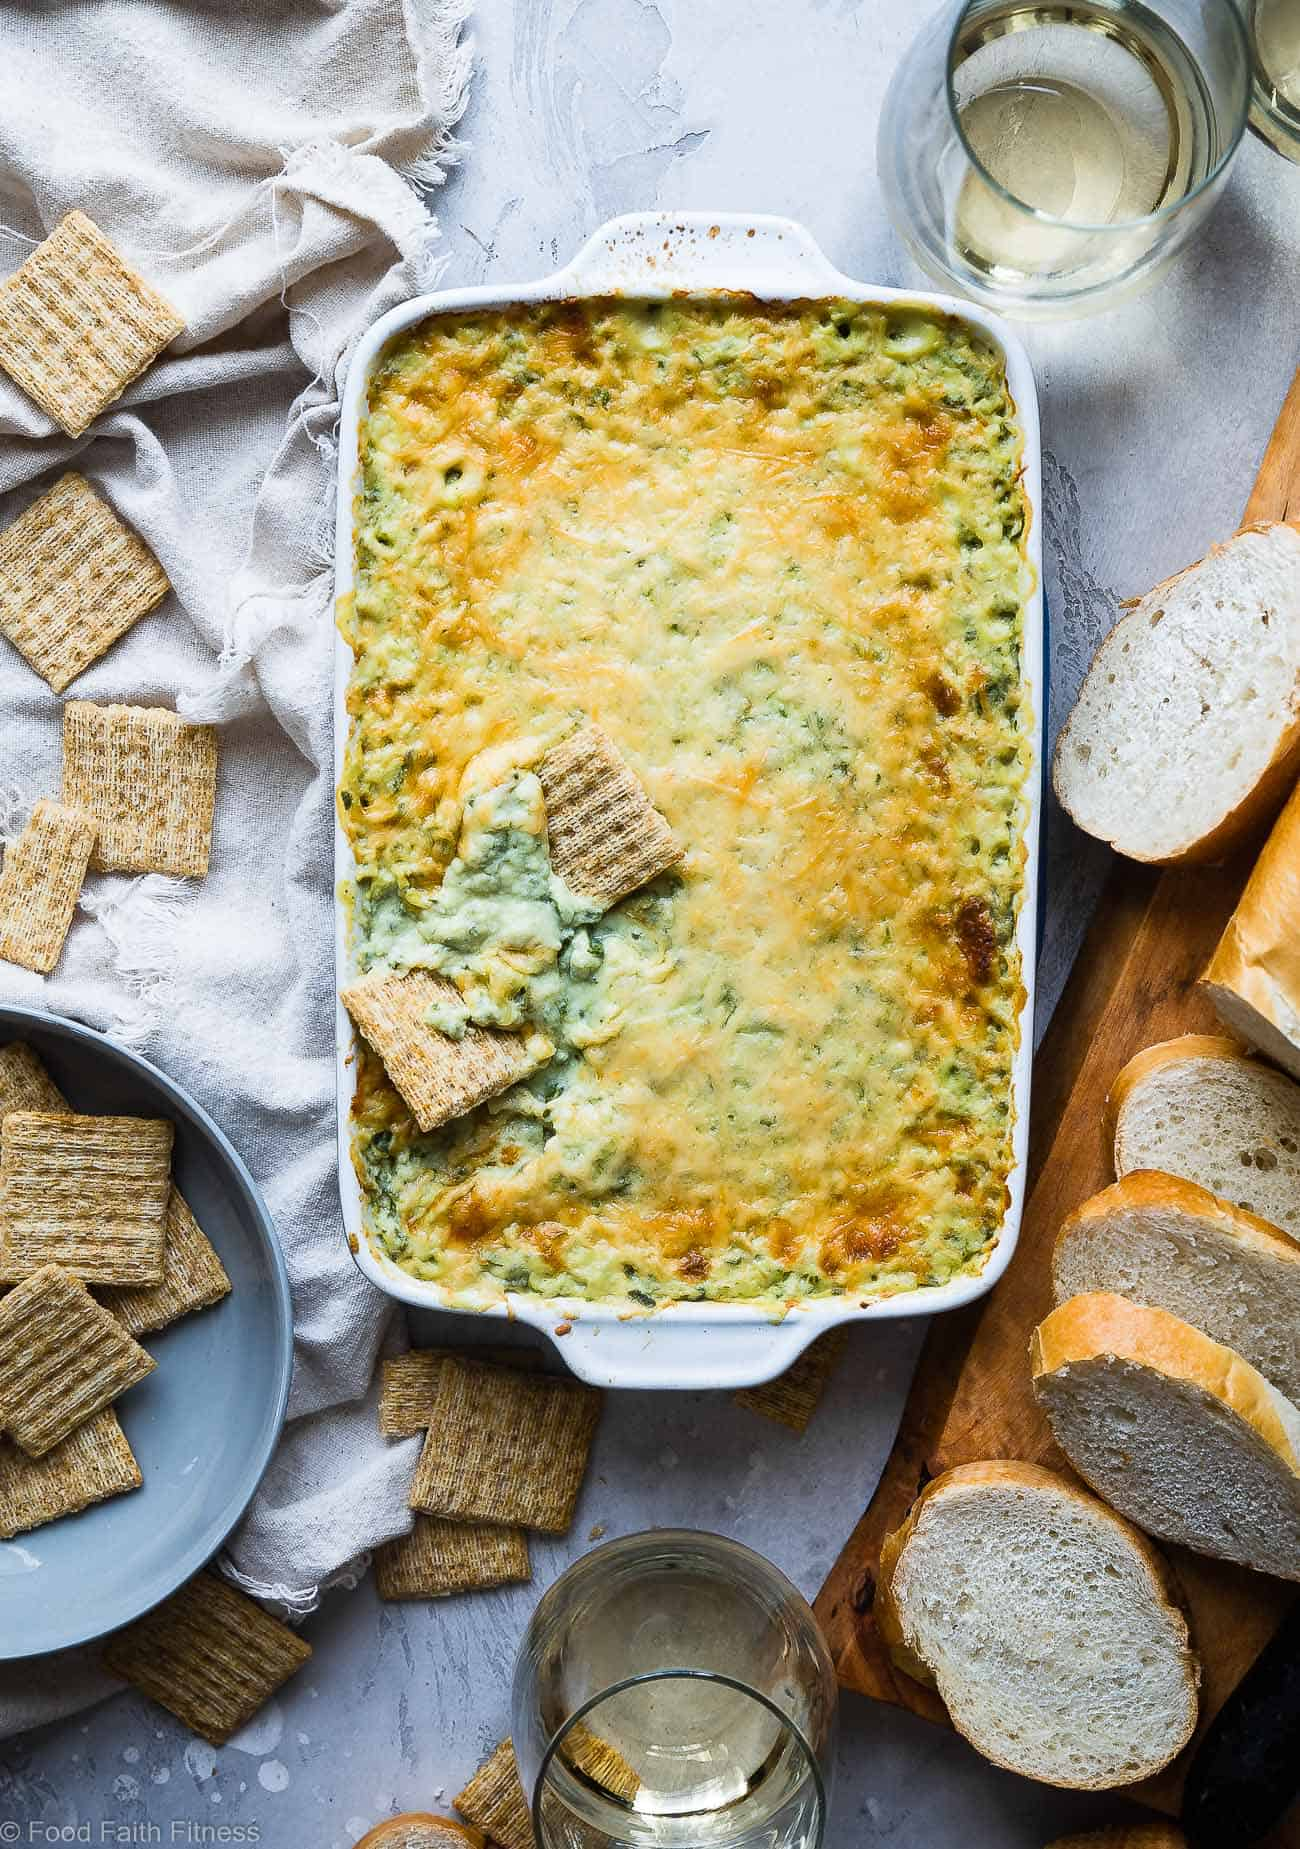 Easy Homemade Spinach Greek Yogurt Dip - This easy, cheesy, baked spinach cheese dip uses Greek yogurt to make it SUPER thick and creamy! It's low carb, protein packed and always a hit at parties! No one believes it's healthy! | Foodfaithfitness.com | @FoodFaithFit